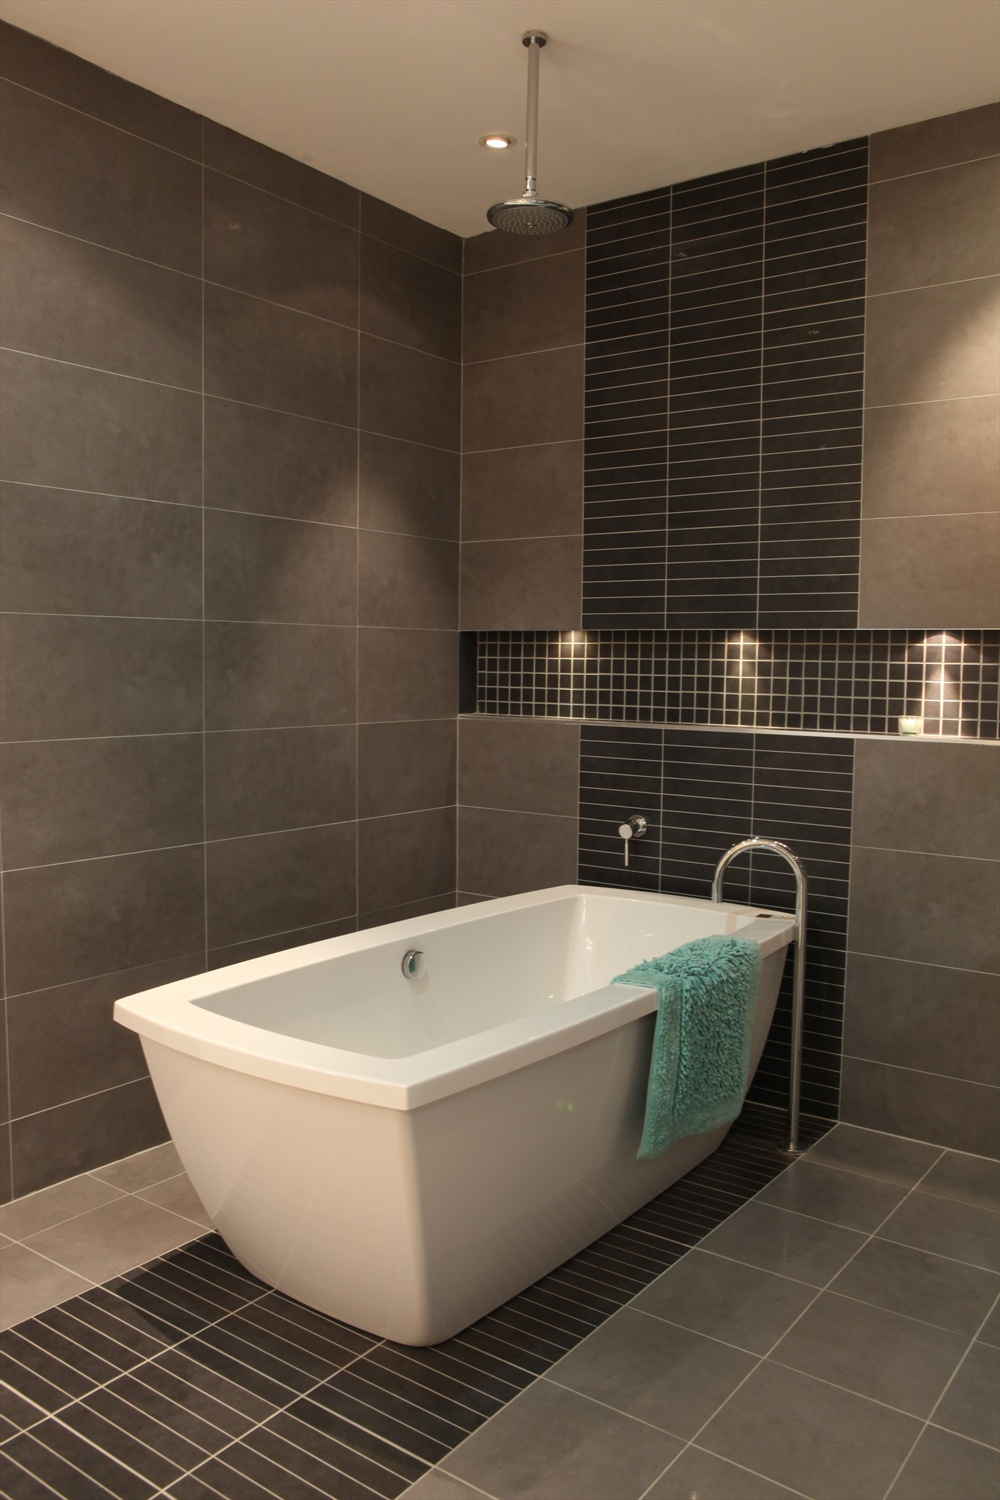 3 things not to skimp on your bathroom renovation